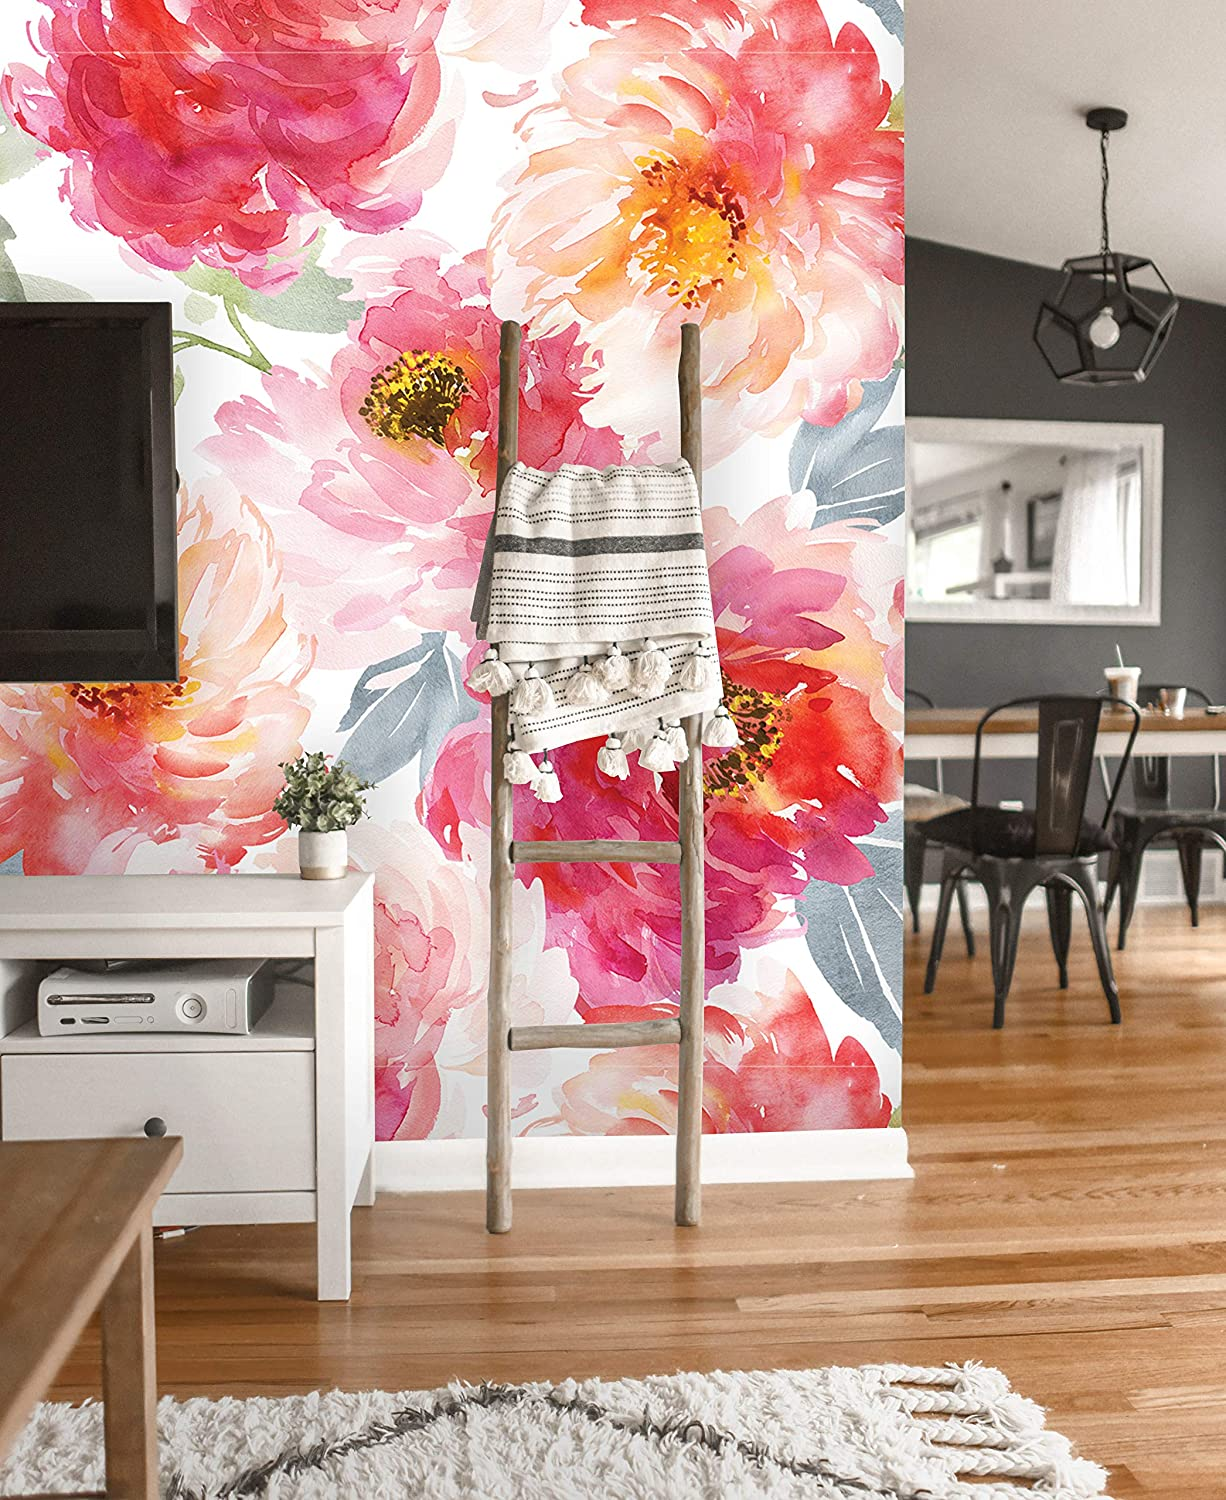 "Removable Wallpaper | Peel and Stick Floral Wallpaper | Self Adhesive Watercolor Flowers Wallpaper | Peonies Mural (24""W x 108""H Inches)"